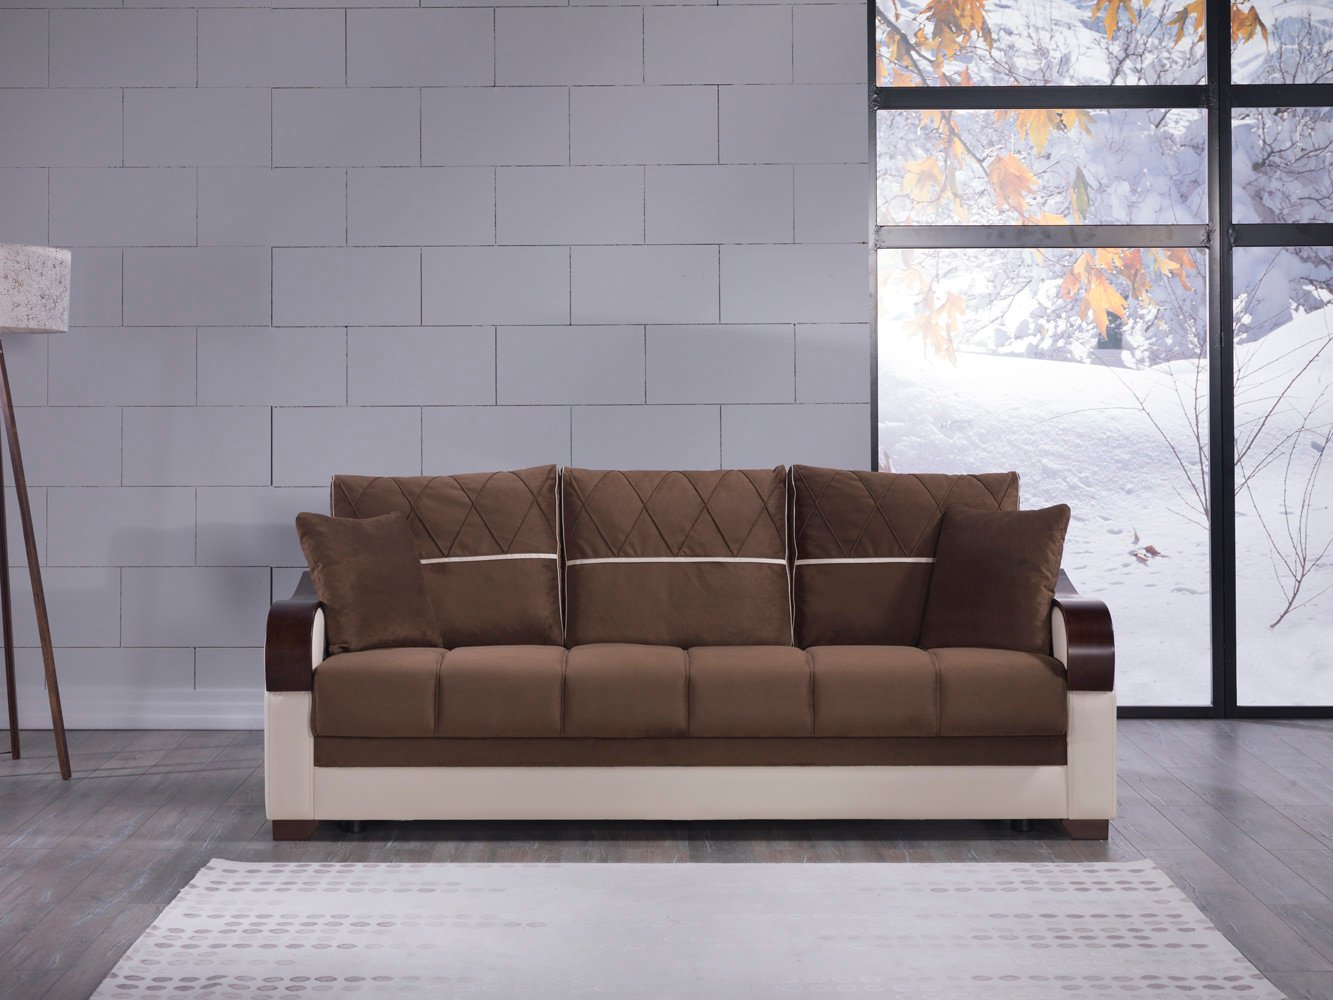 Bennett Best Brown Convertible Sofa Bed by Istikbal (Sunset)